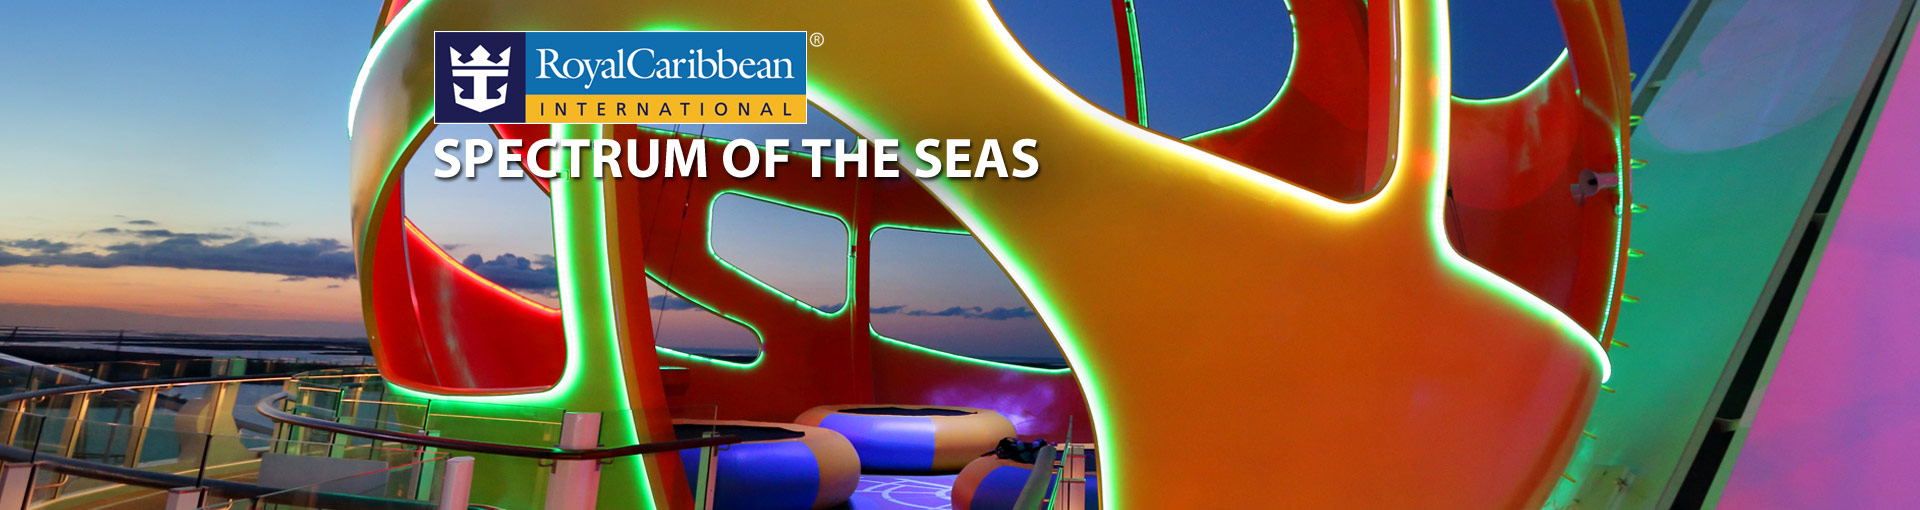 Banner image for Spectrum of the Seas